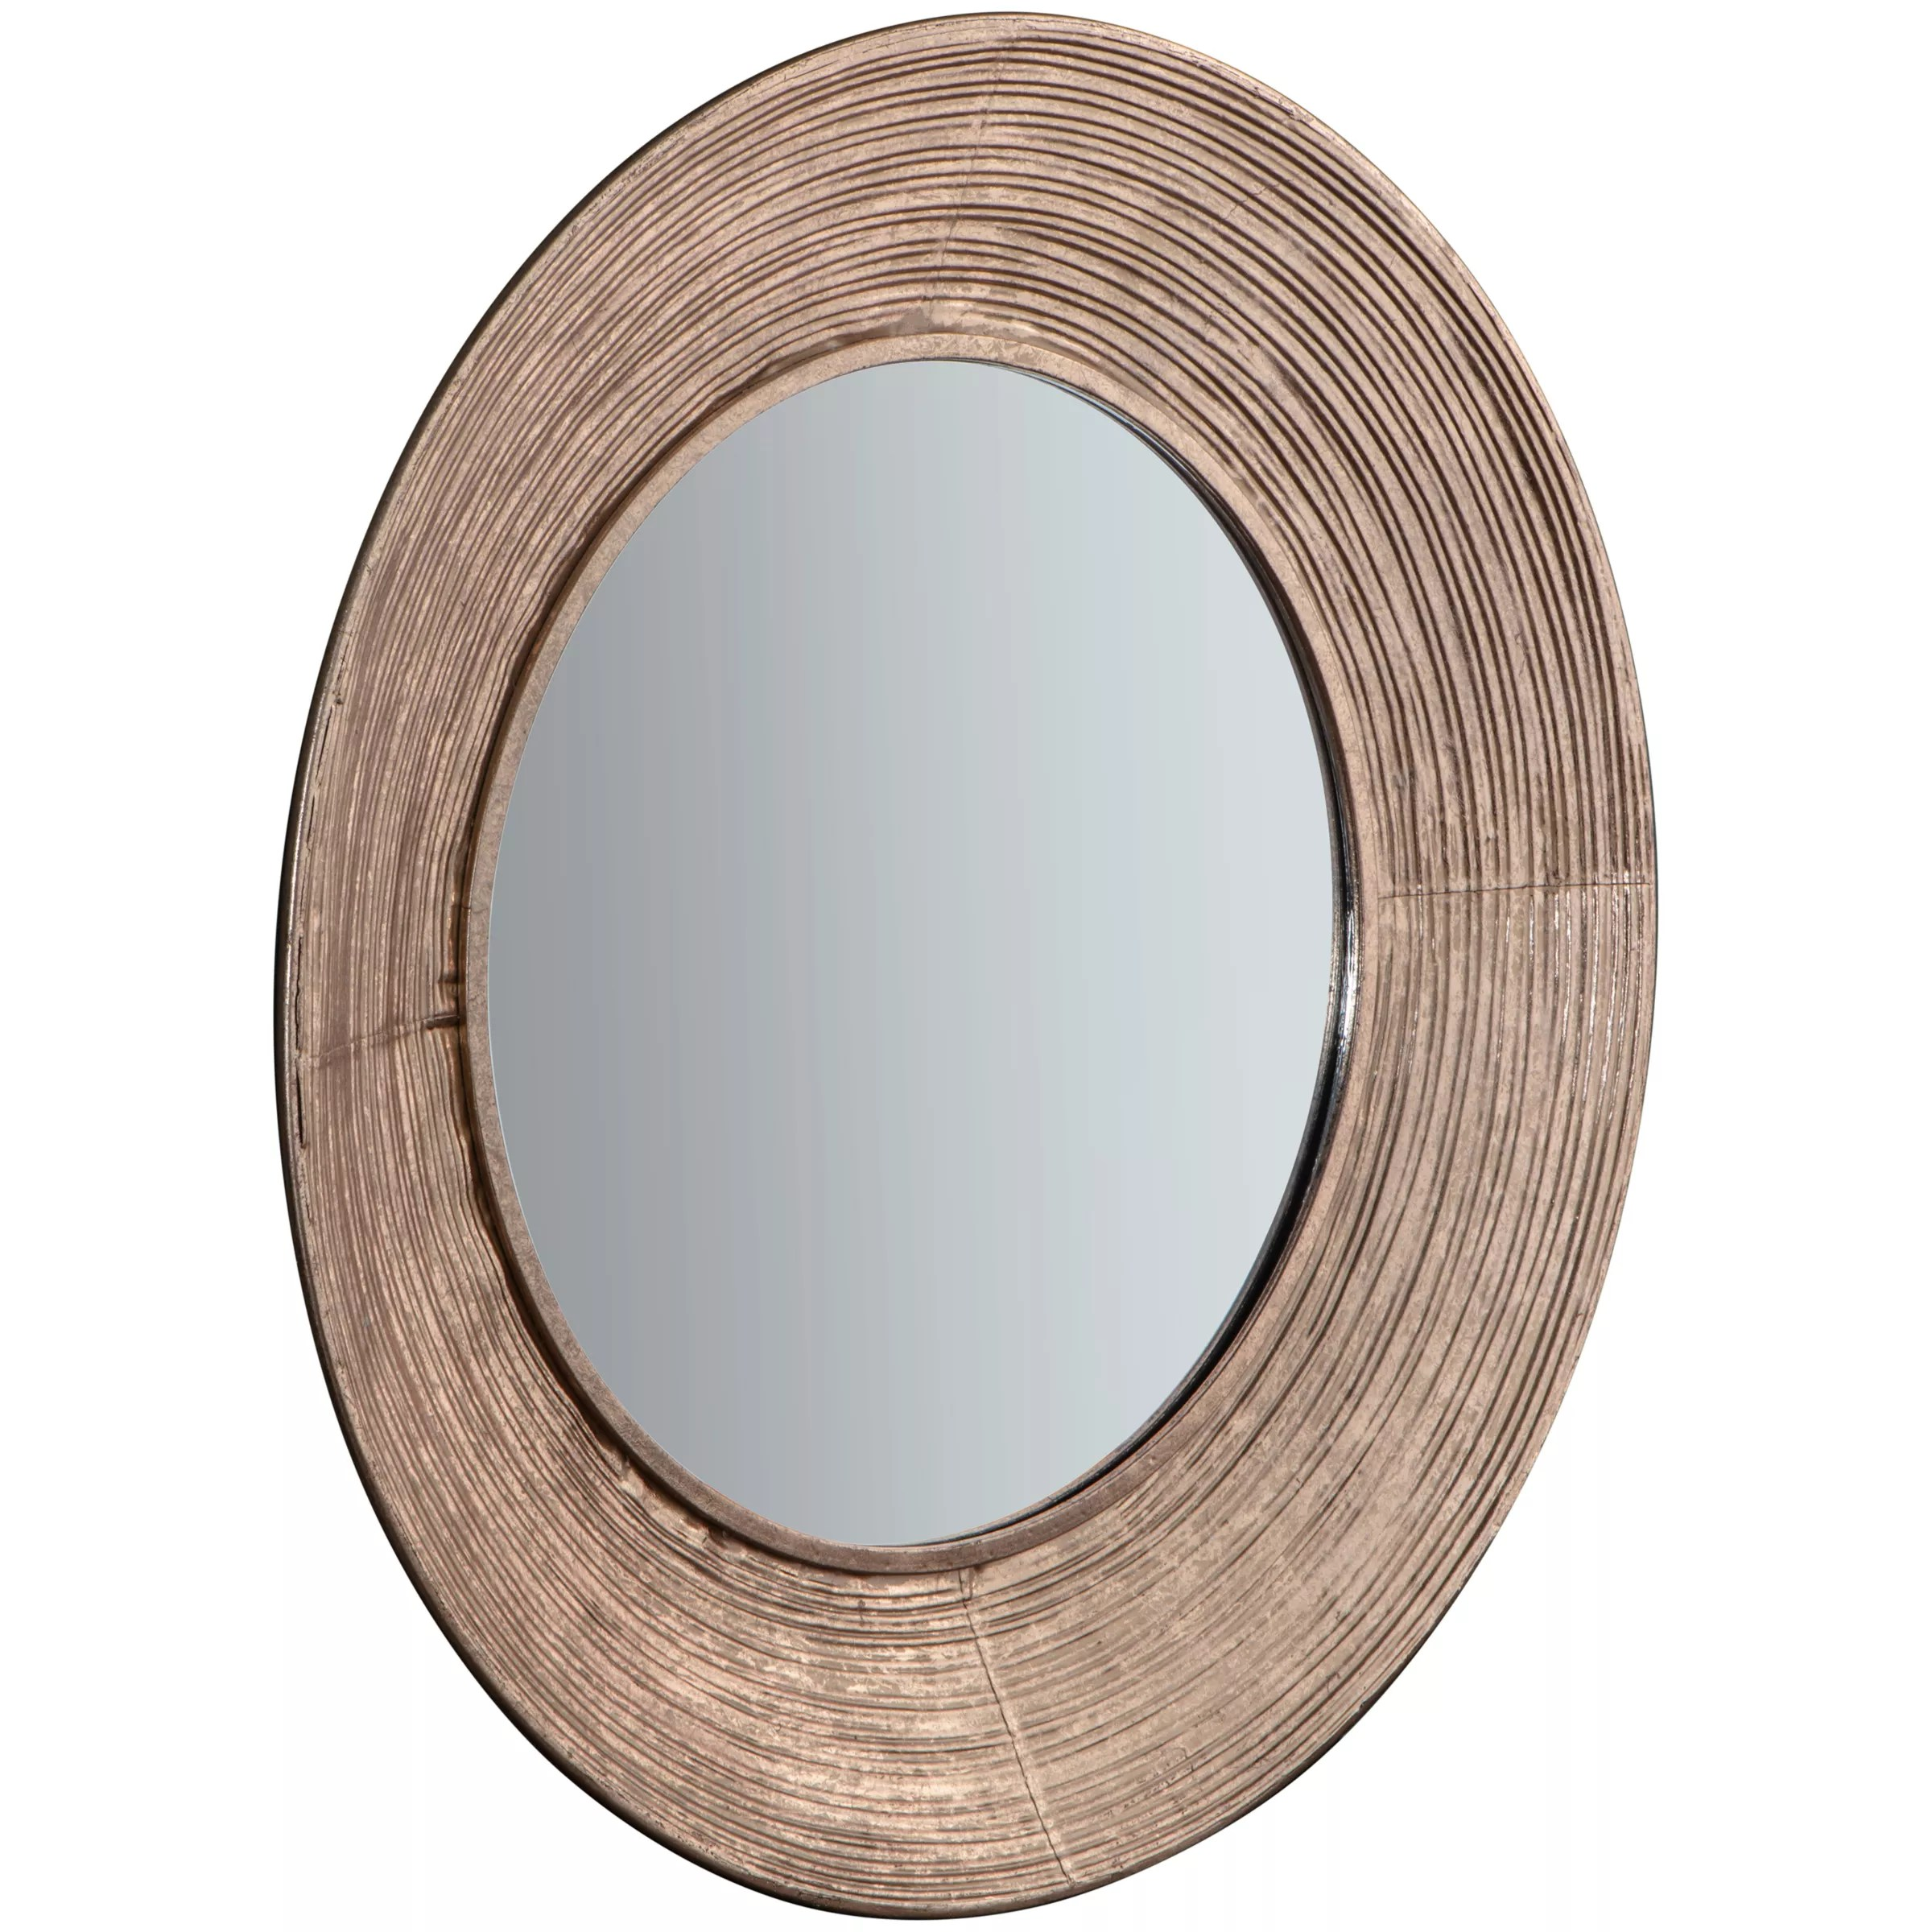 Buy Round Mirror Aurelia Round Mirror 72cm Metallic At John Lewis And Partners